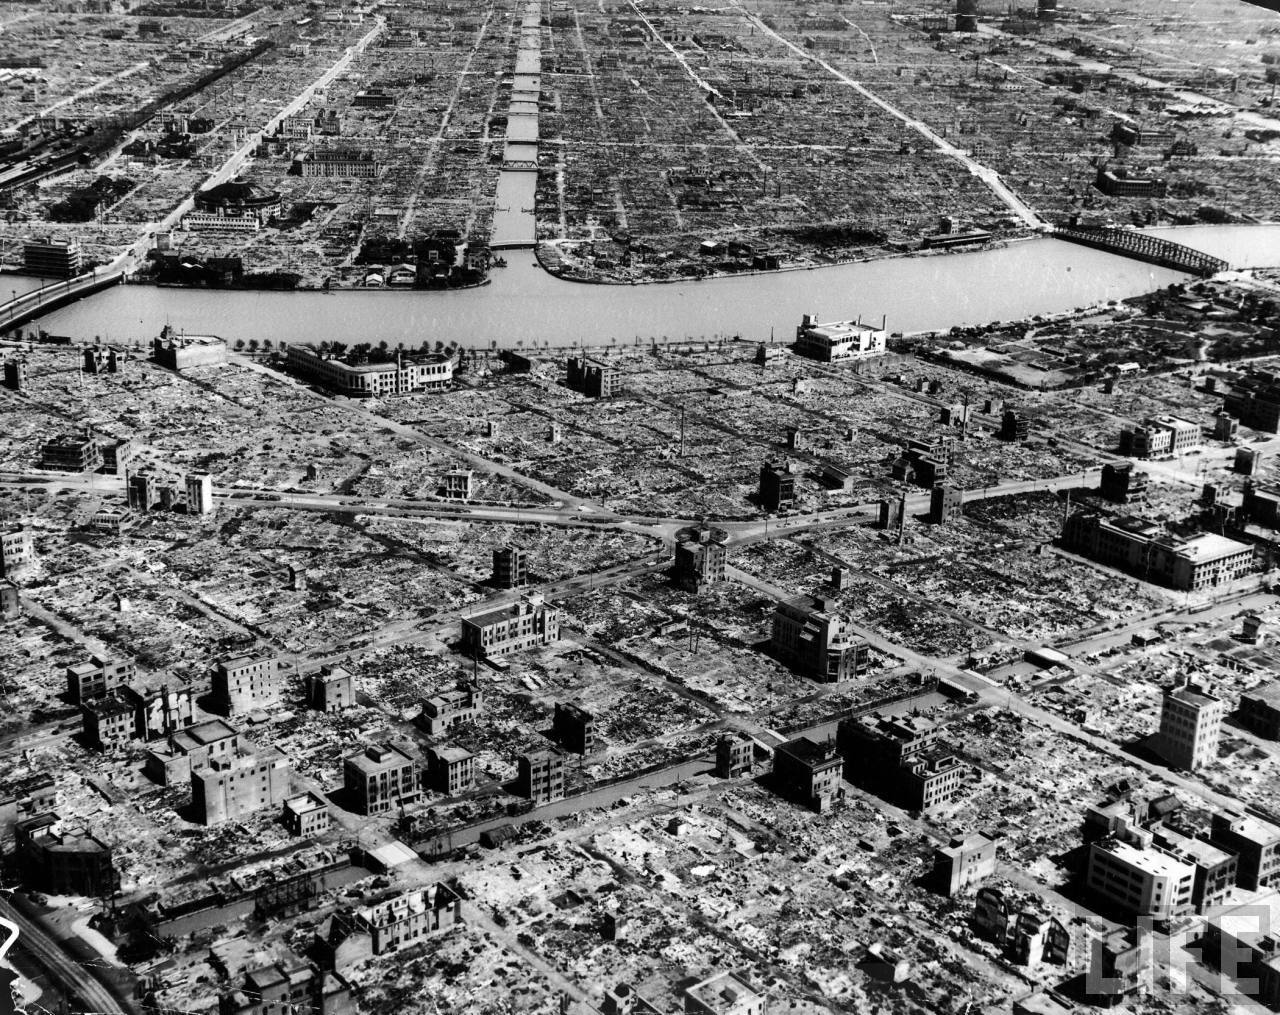 the bombing of hiroshima japan The atomic bombings of hiroshima and nagasaki were nuclear attacks on the empire of japan during world war ii (wwii) the united states and the allies were fighting.